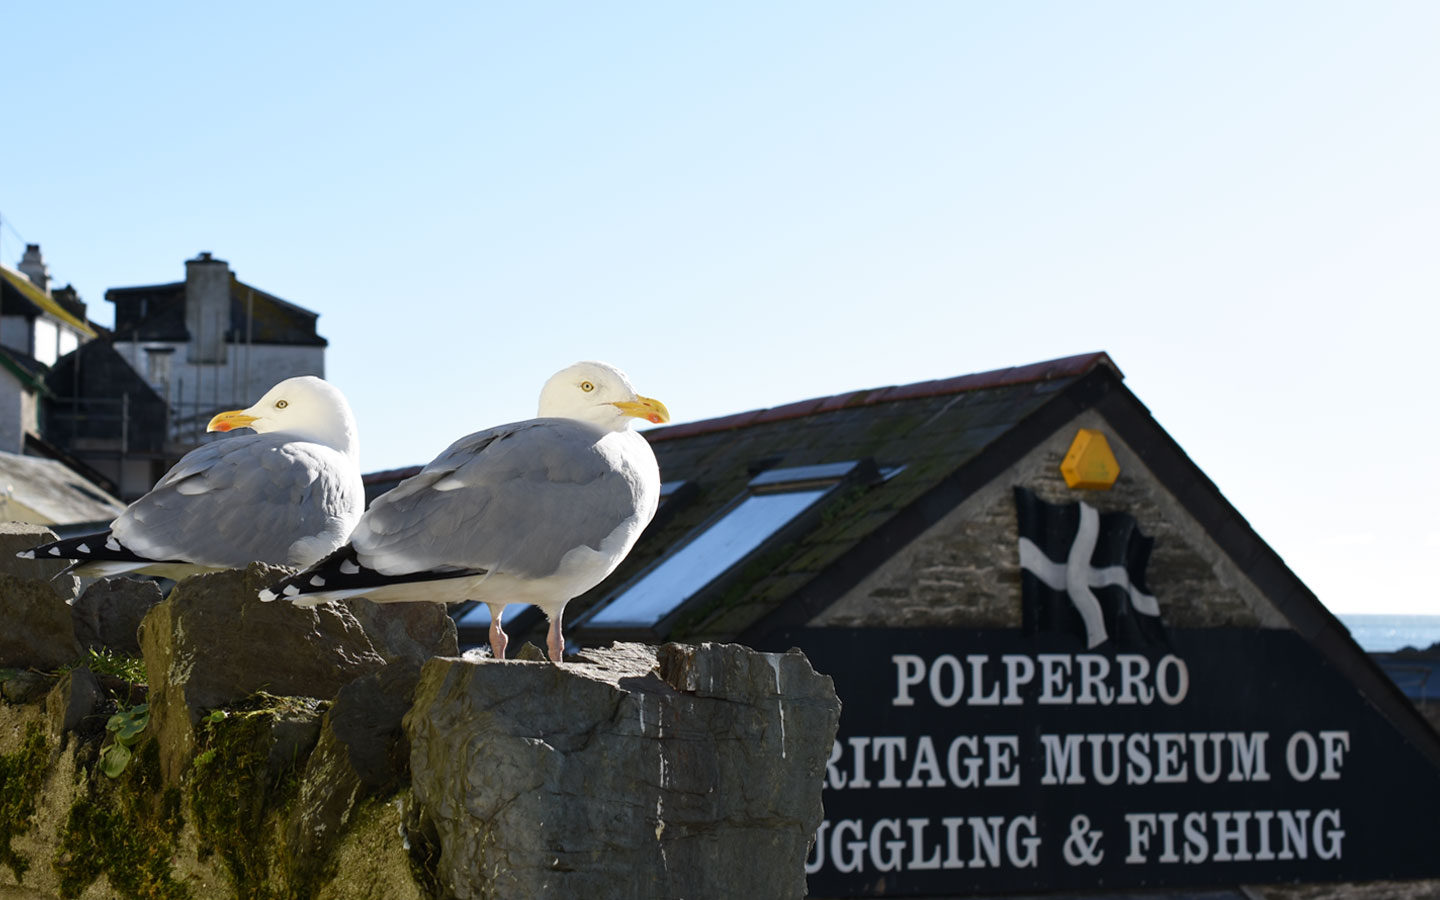 seagulls sat on wall in front of polperro vintage museum of lugging and fishing